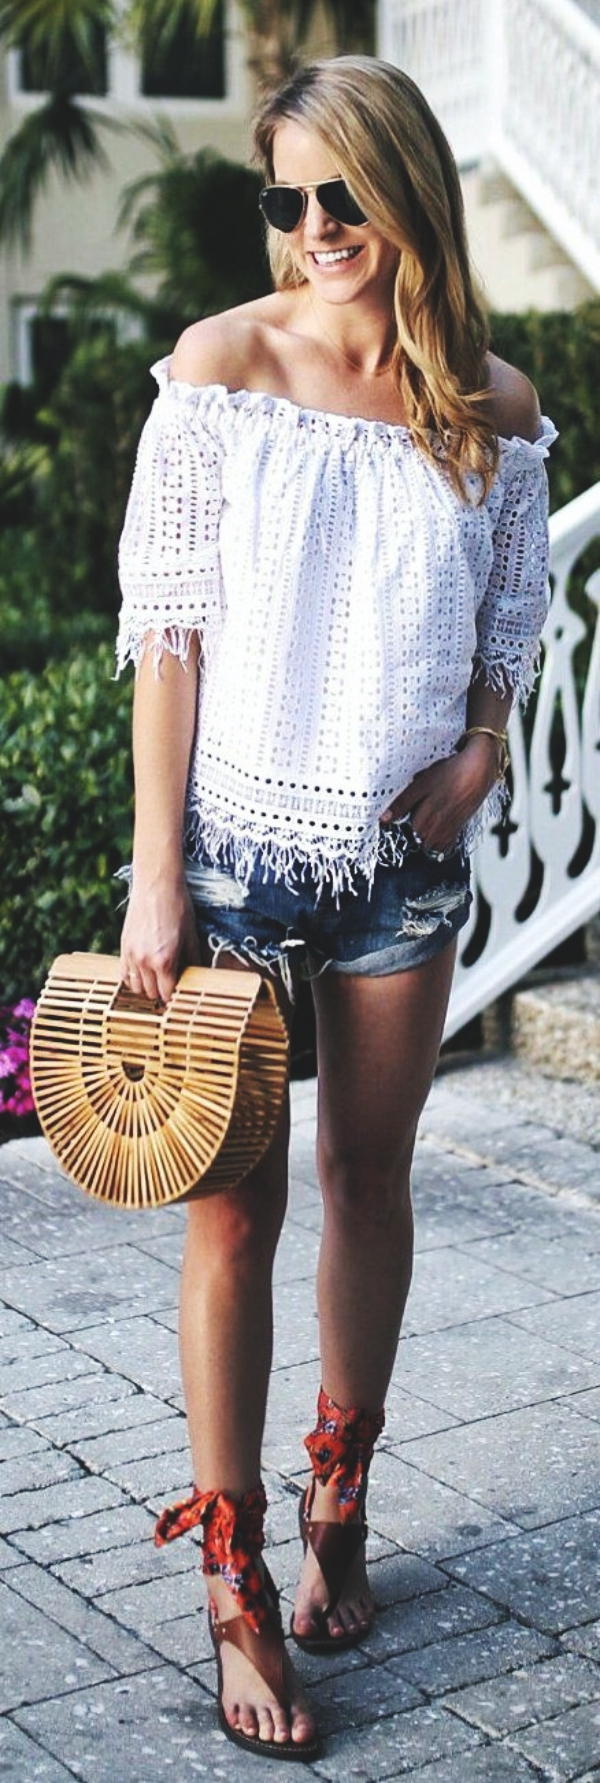 Cute Summer Outfits to Copy15